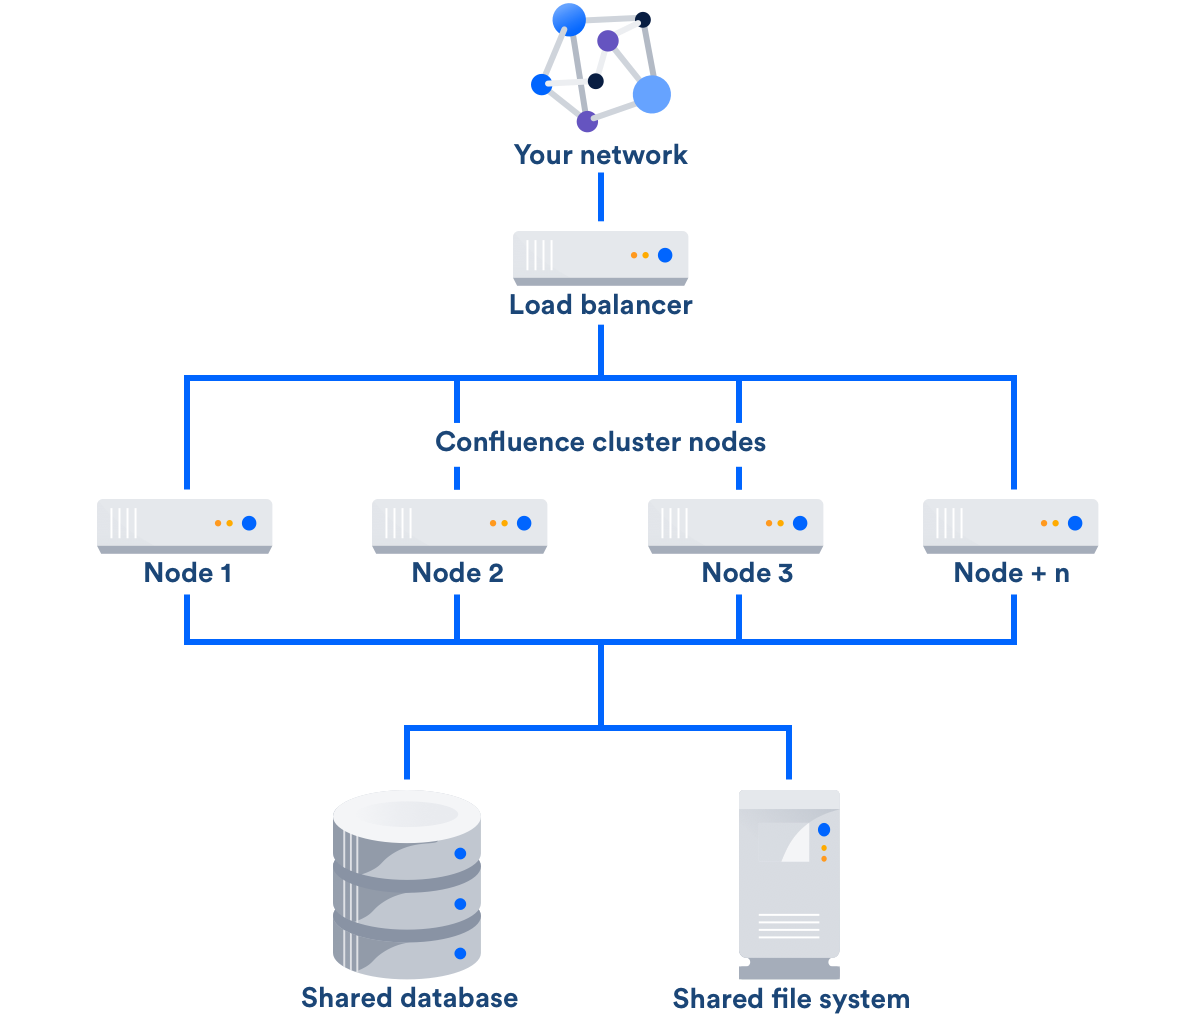 confluence data center - atlassian documentation node b diagram icons application node diagram